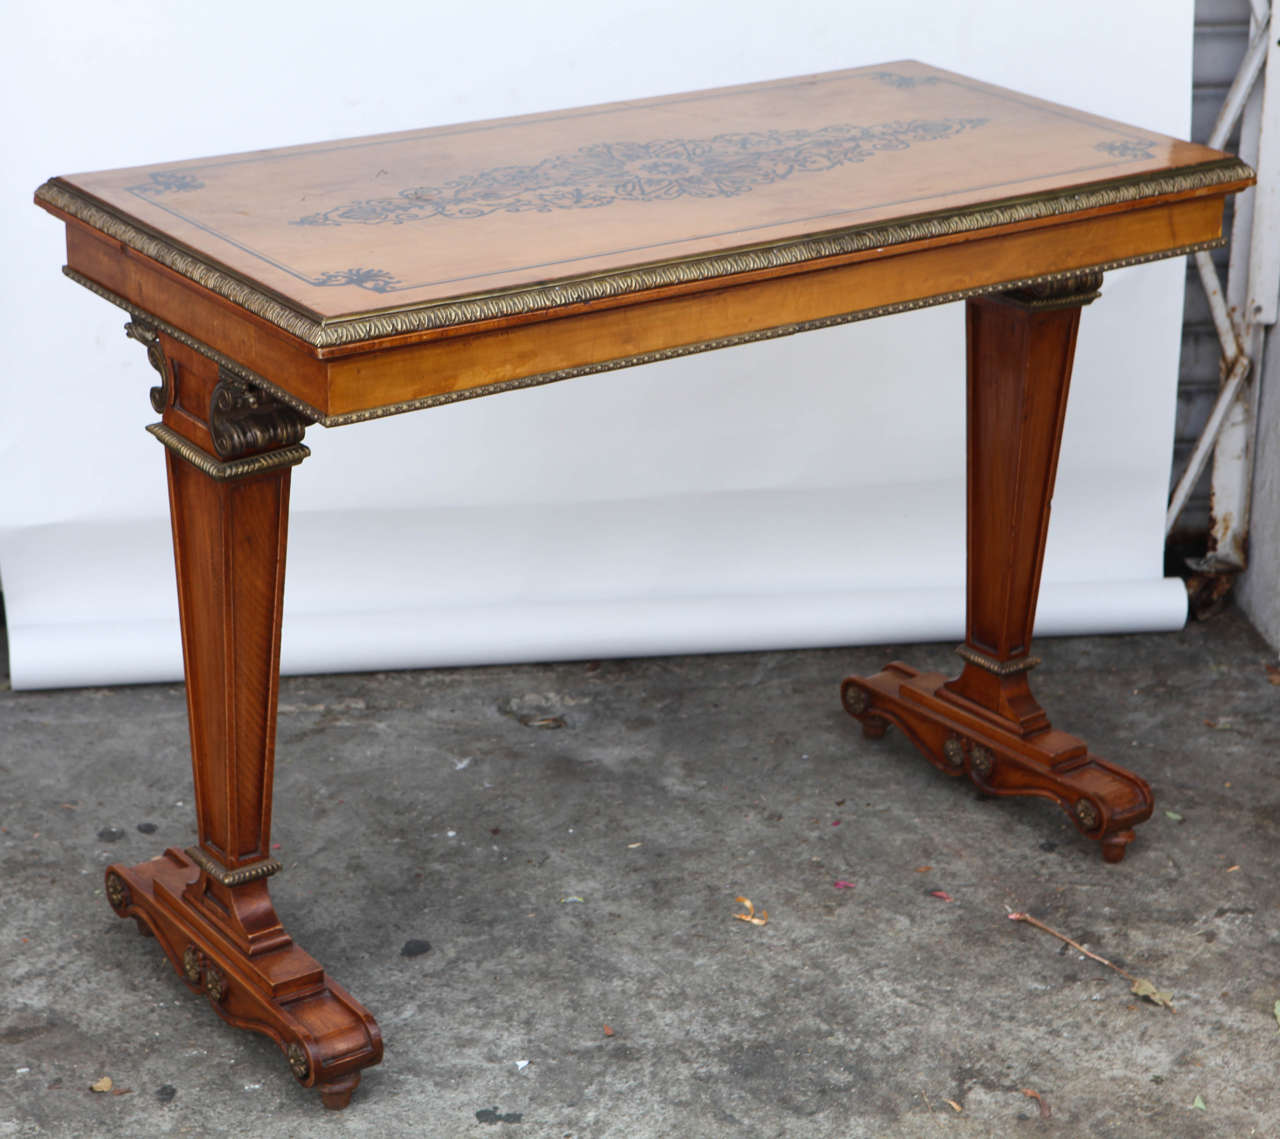 1940's Vintage French Satinwood Console/Sofa Table with Inlay and Bronze Mounts.